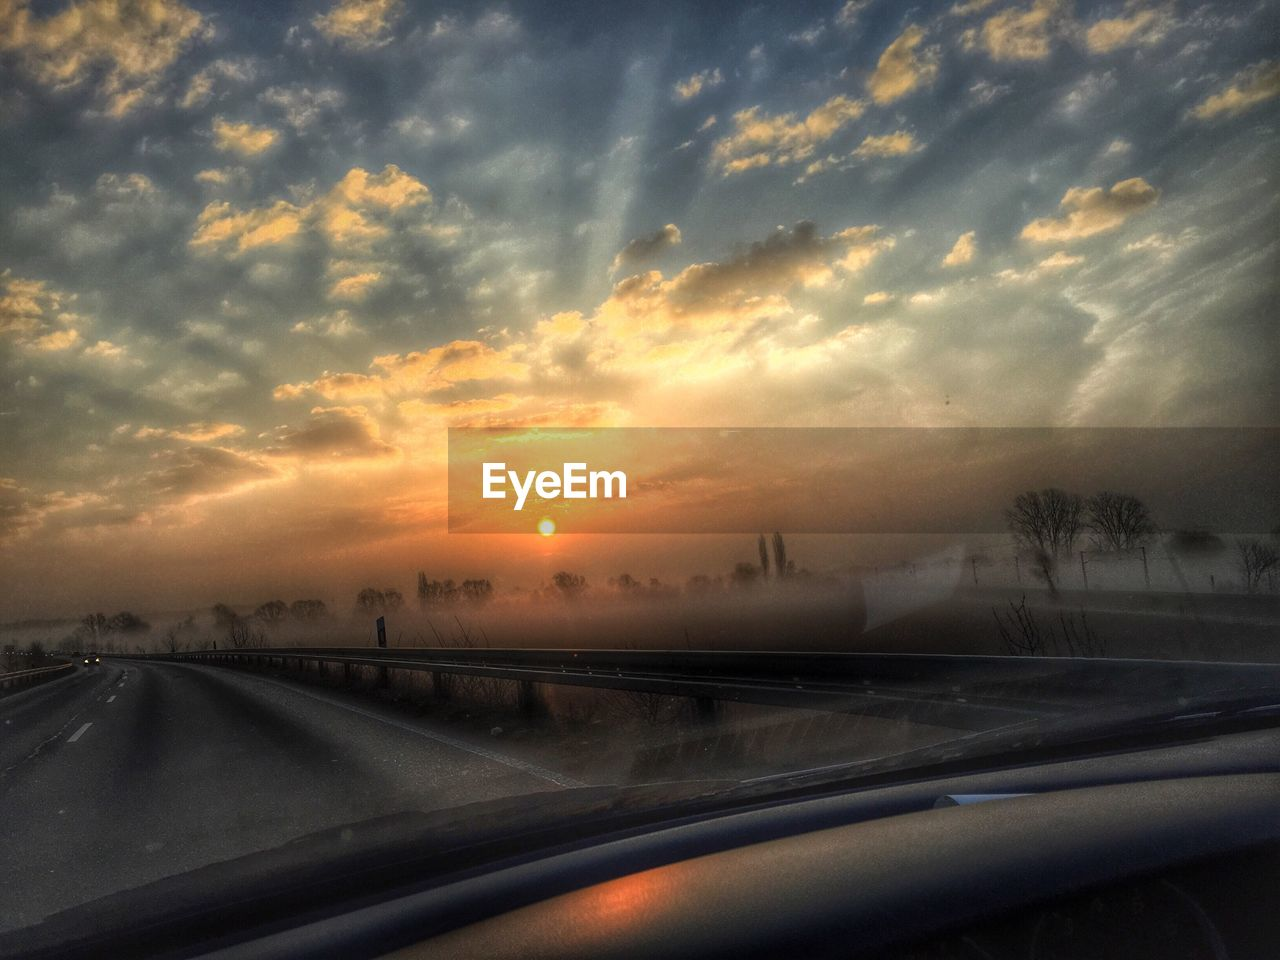 car, sunset, cloud - sky, transportation, sky, road, land vehicle, dramatic sky, windshield, car interior, nature, mode of transport, no people, car point of view, travel, beauty in nature, the way forward, motion, road trip, scenics, storm cloud, outdoors, day